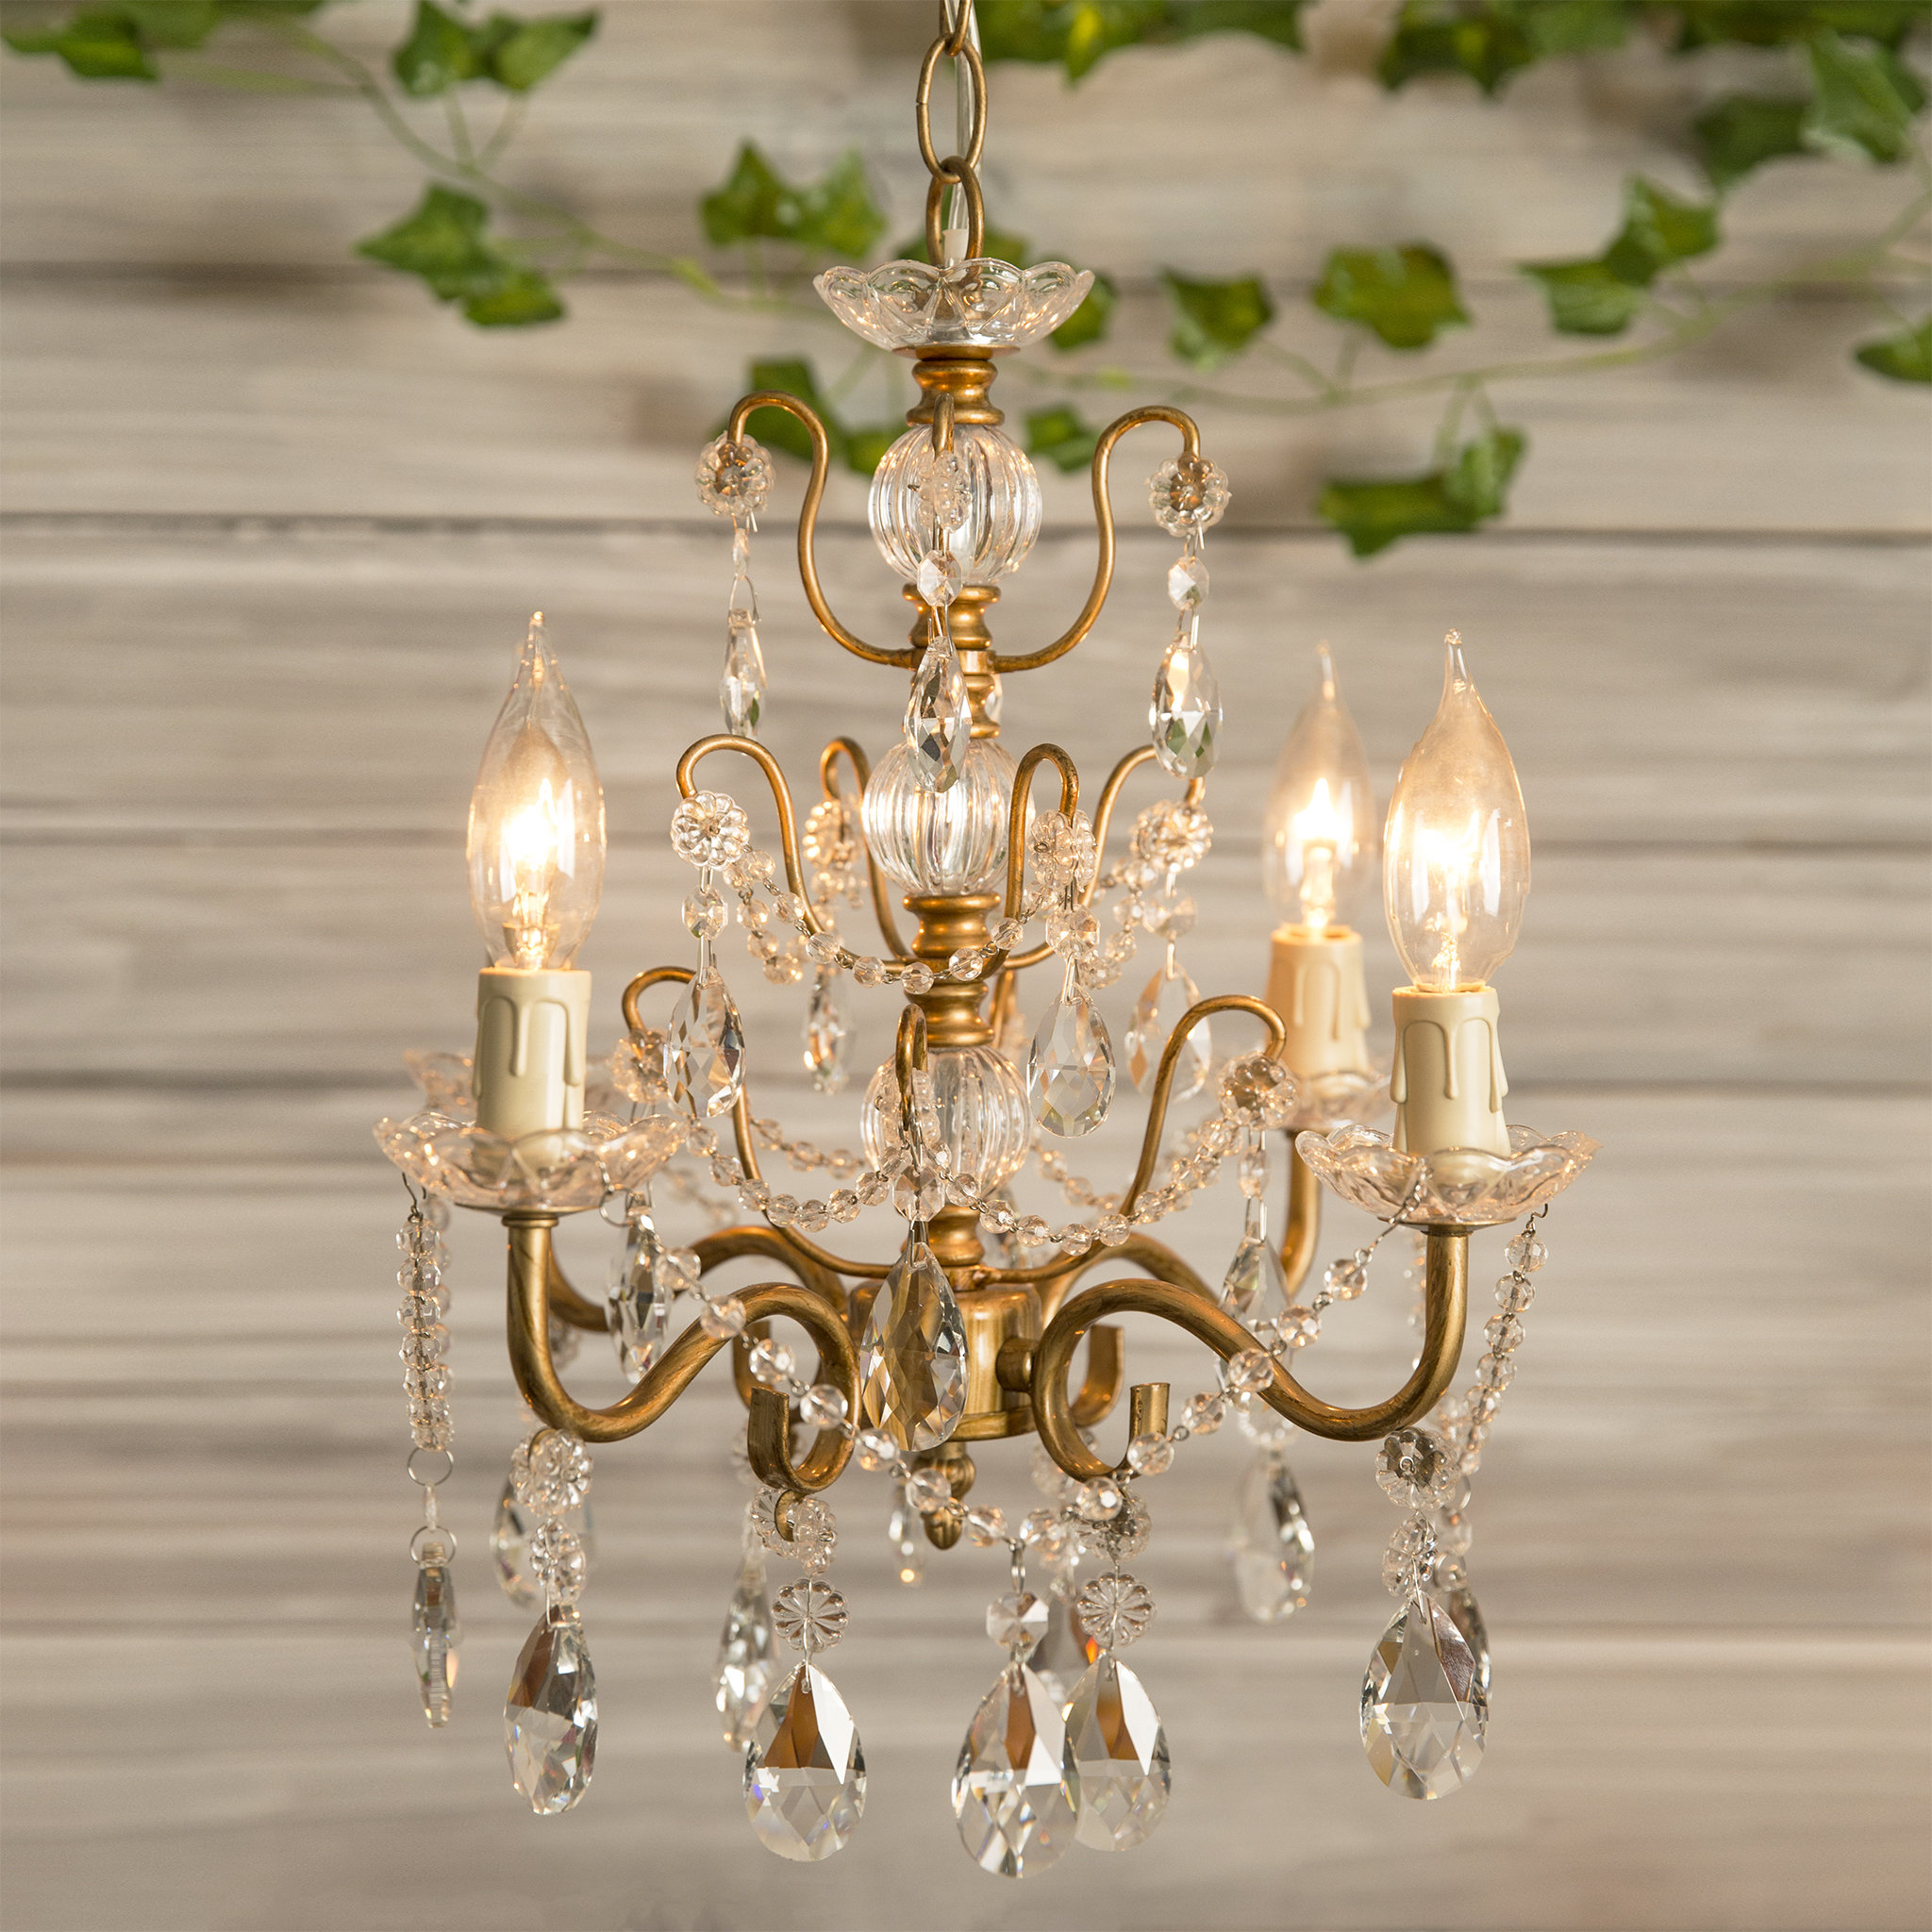 Blanchette 4-Light Candle Style Chandelier pertaining to Current Blanchette 5-Light Candle Style Chandeliers